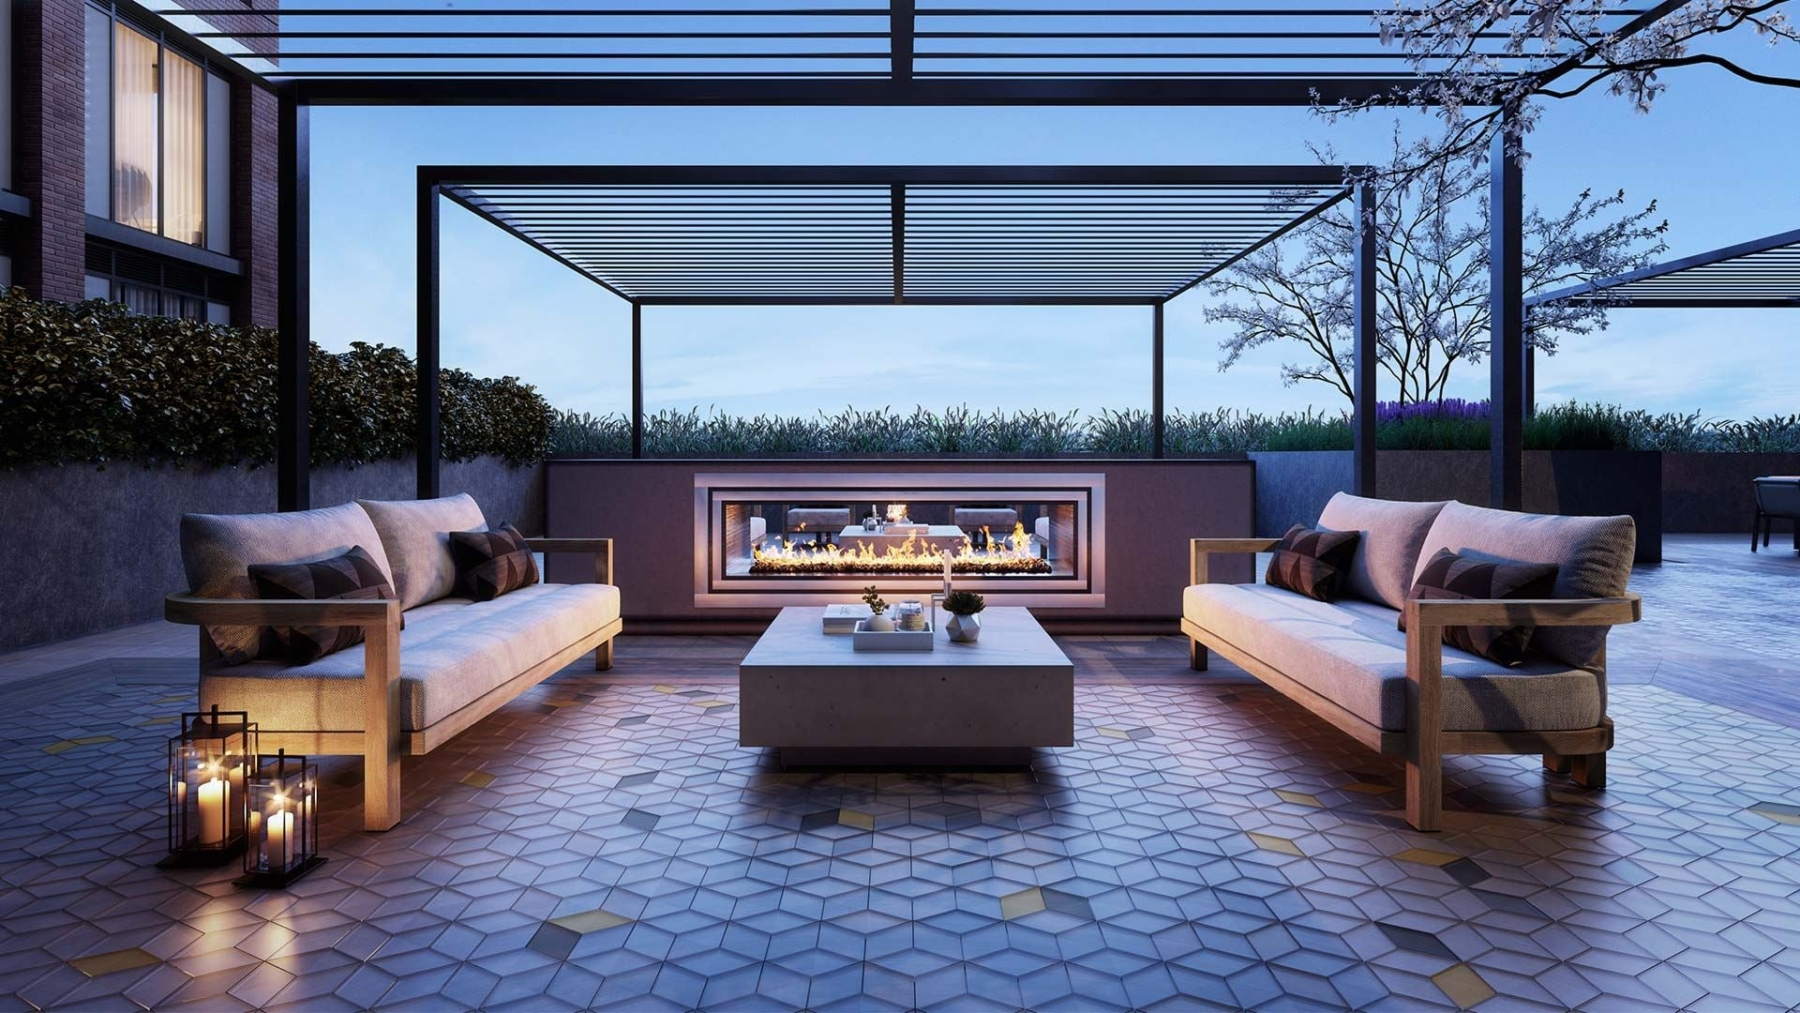 The Dupont Condos terrace with seating and fireplace